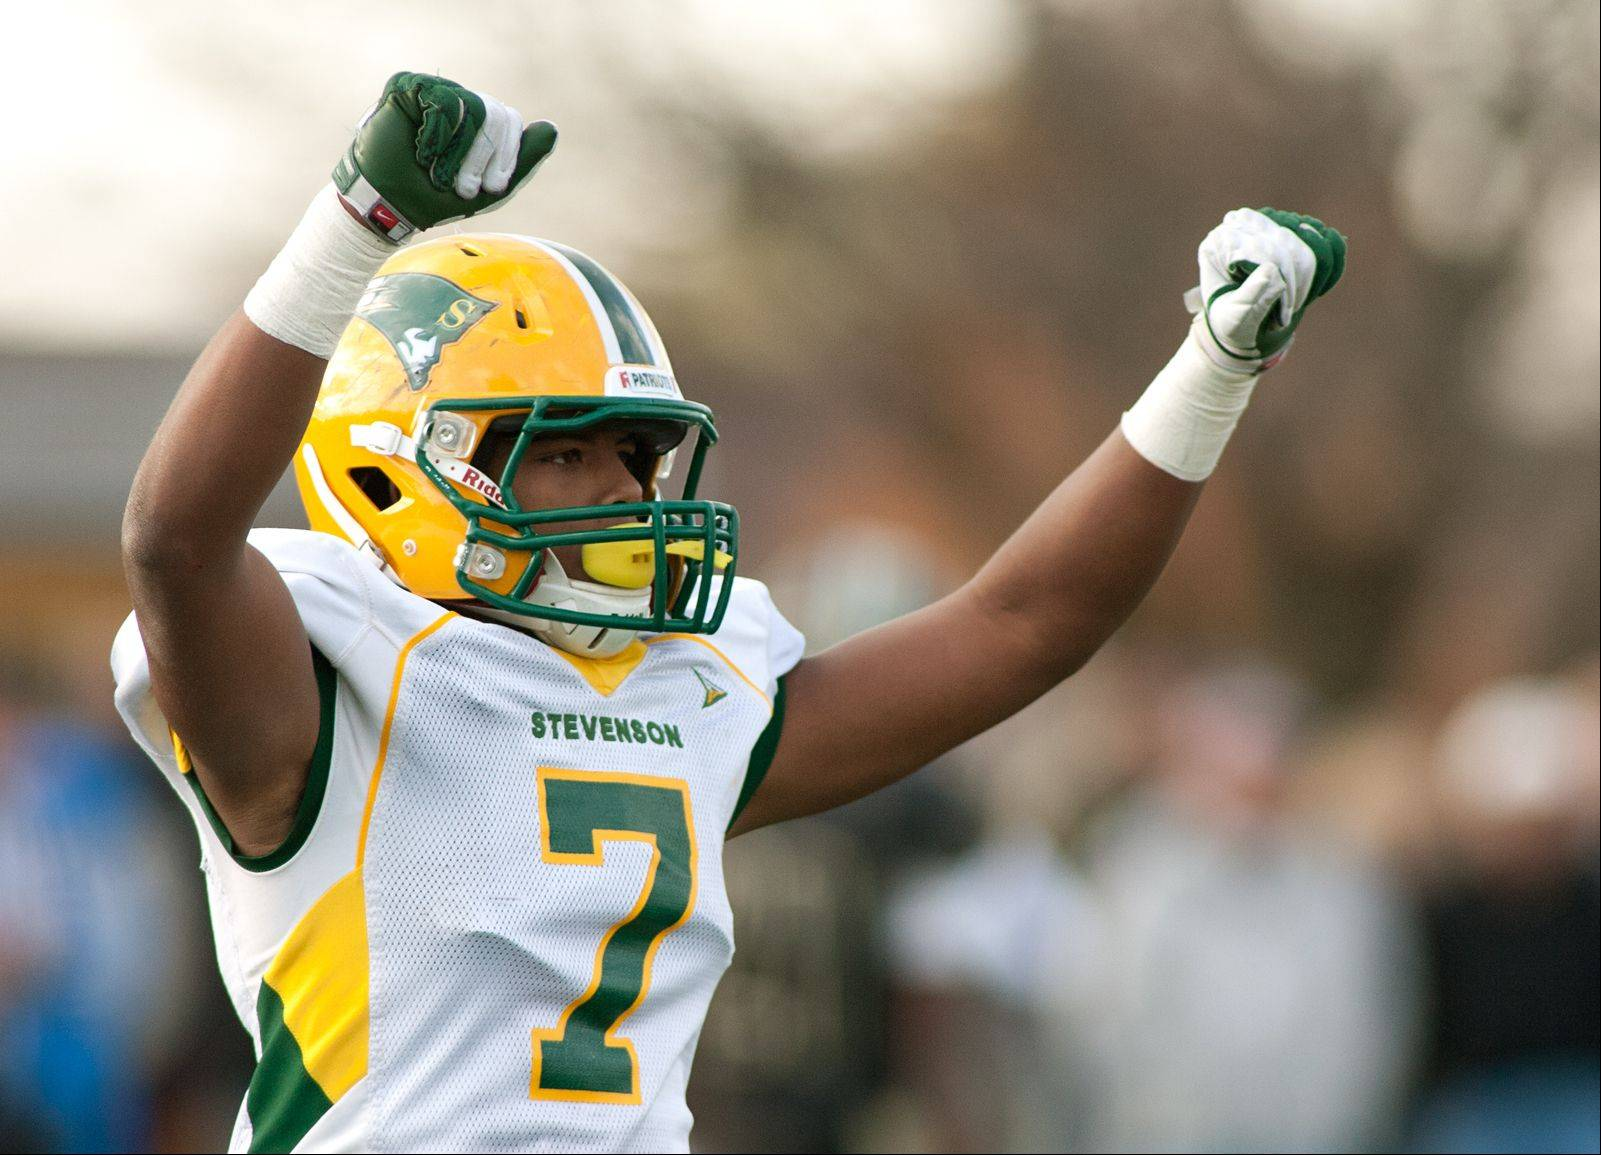 Stevenson's Cameron Green celebrates the Patriots' 20-16 win over Glenbard North in the Class 8A playoffs Saturday.